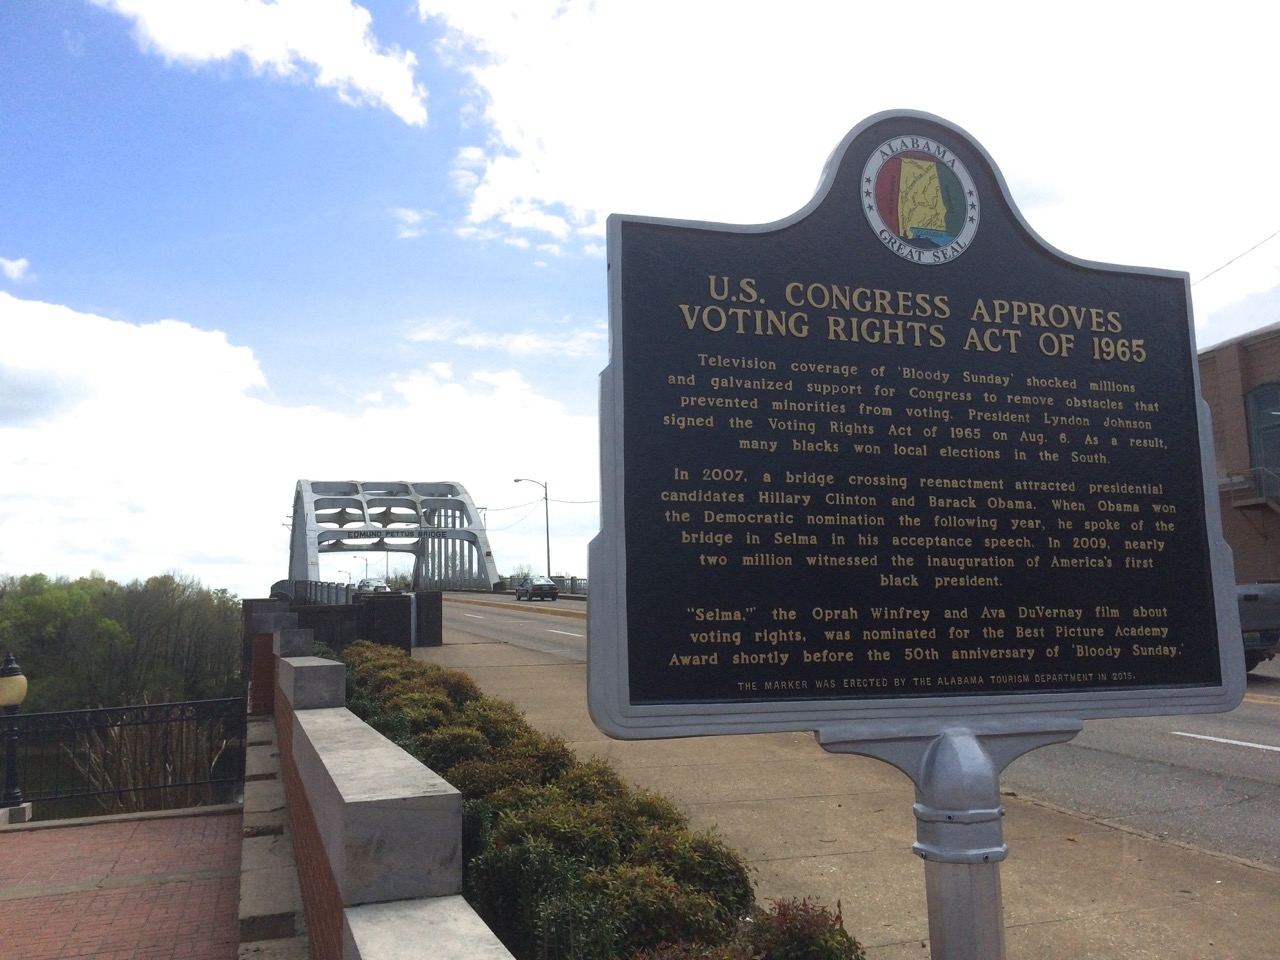 Voting Rights Act of 1965 Marker